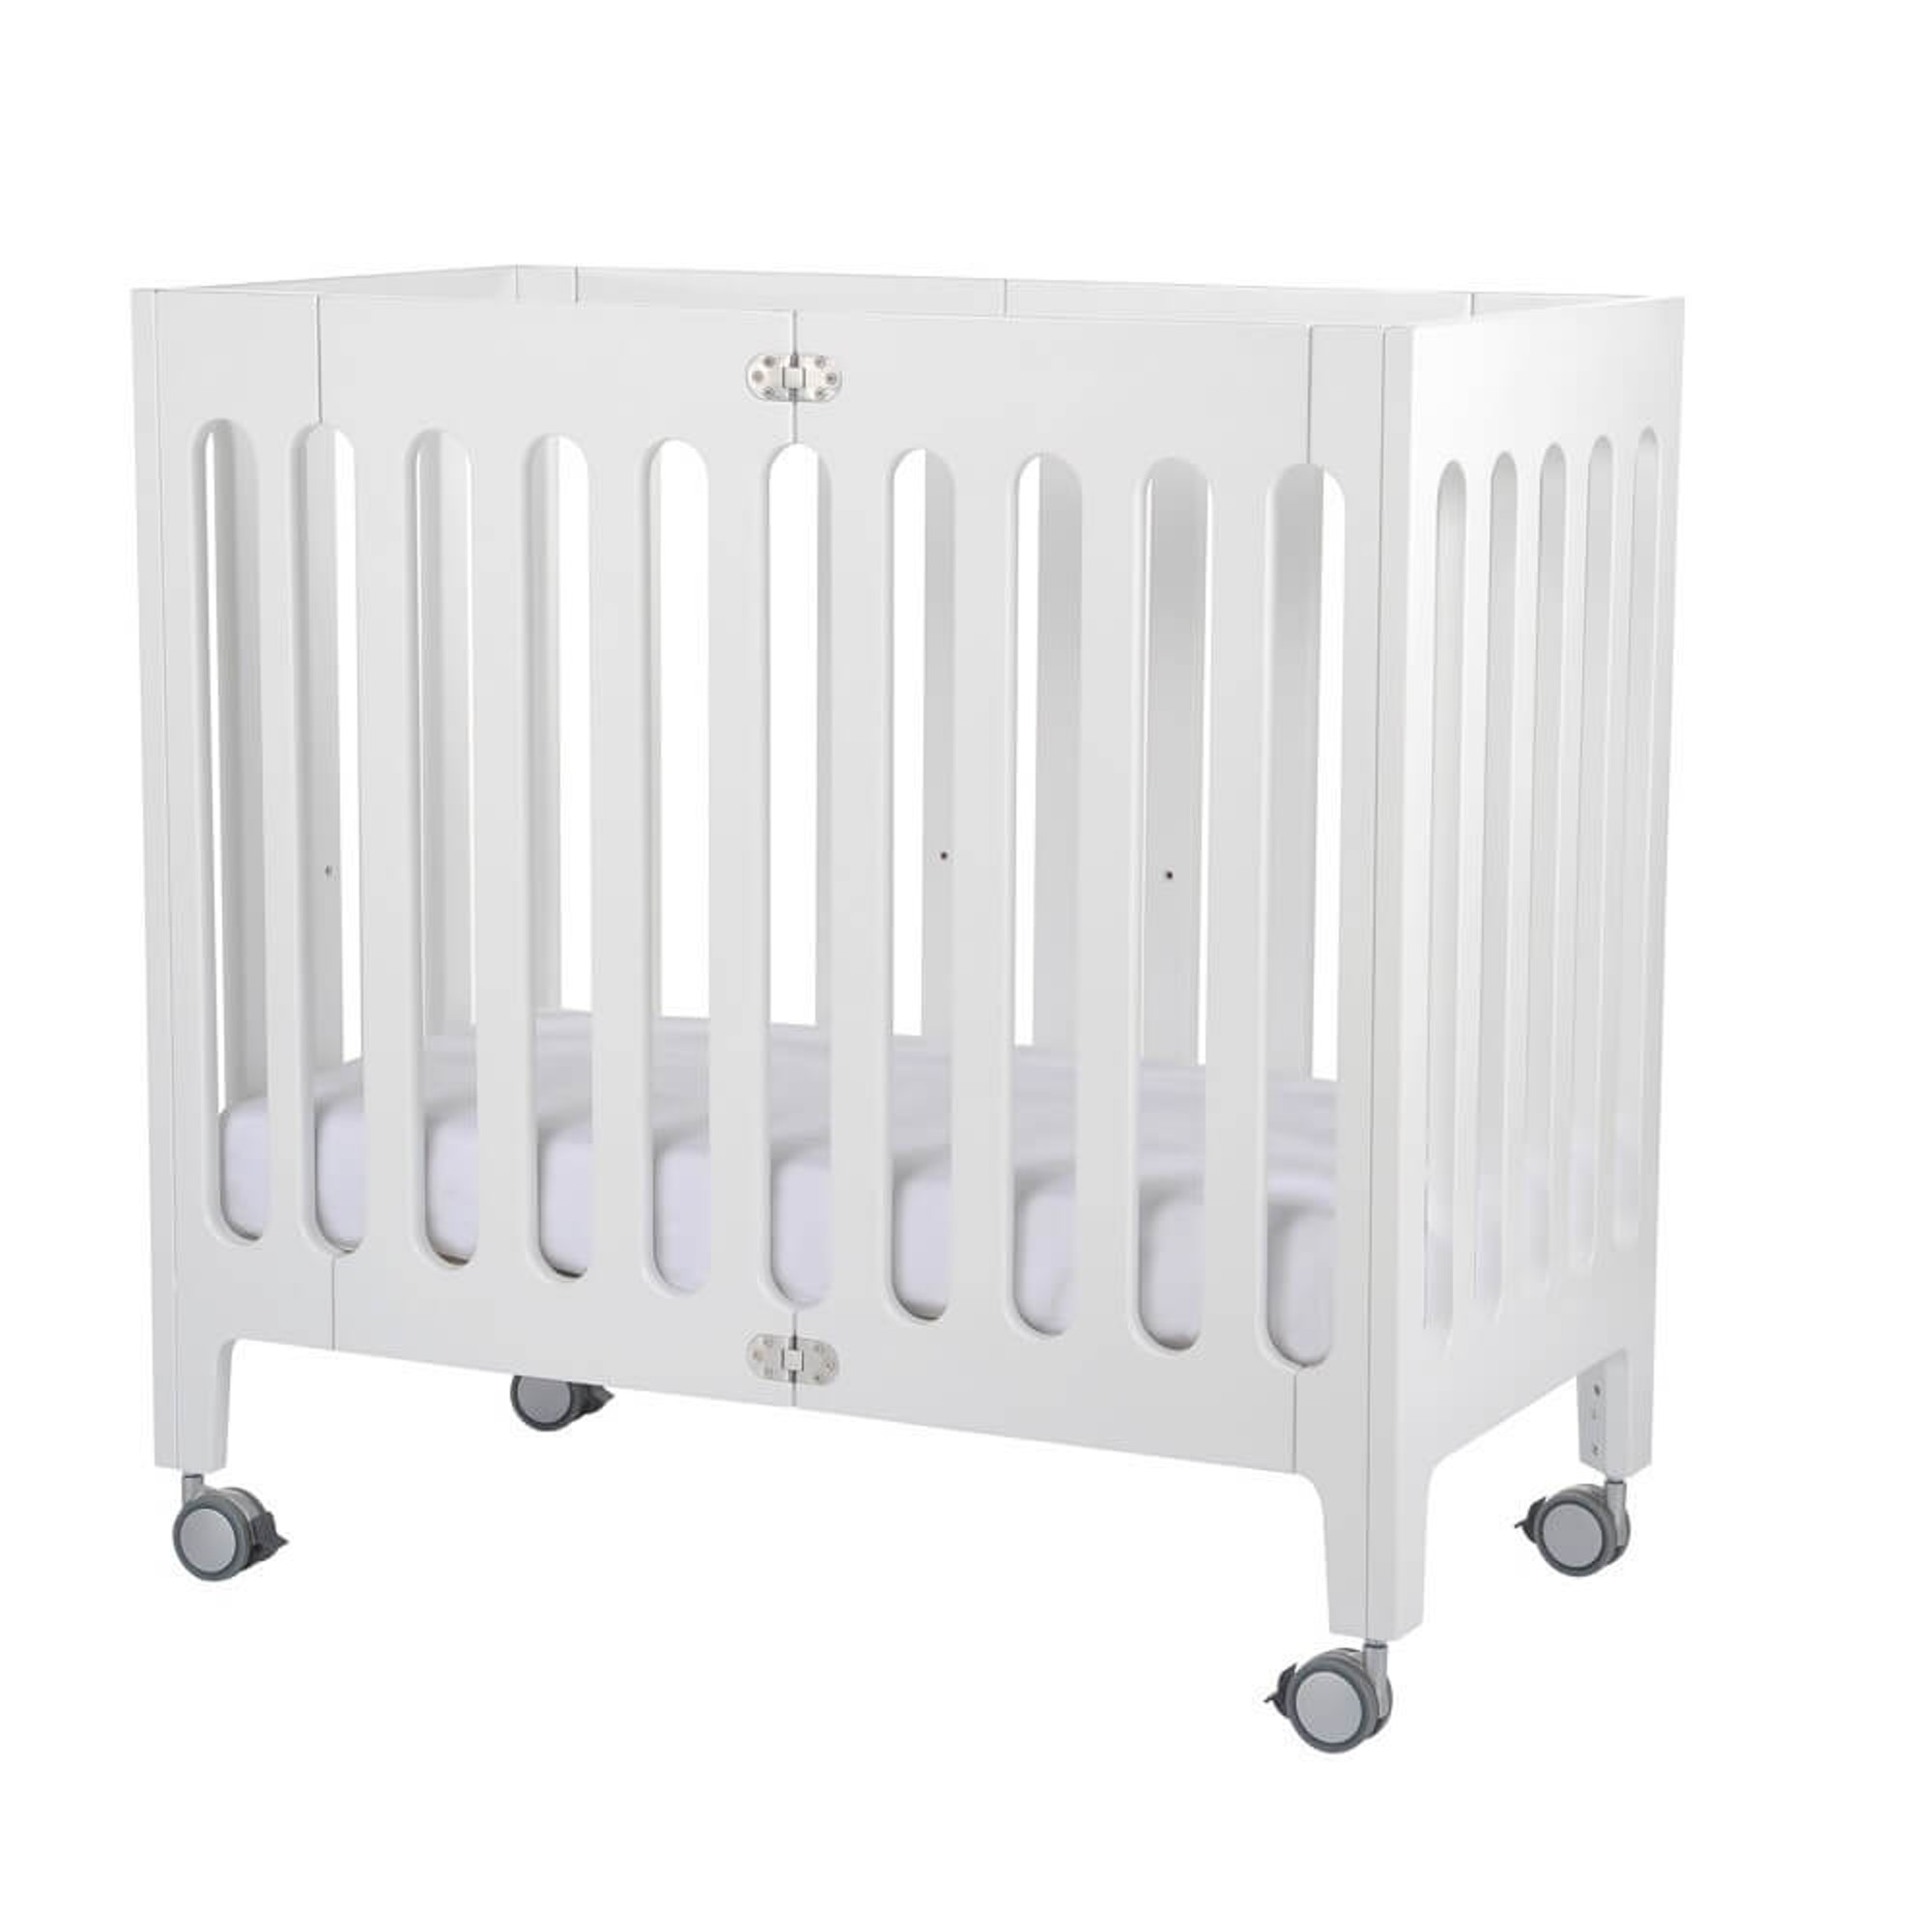 Save Our Sleep Endorsed Mini Crib including Save Our Sleep Mattress